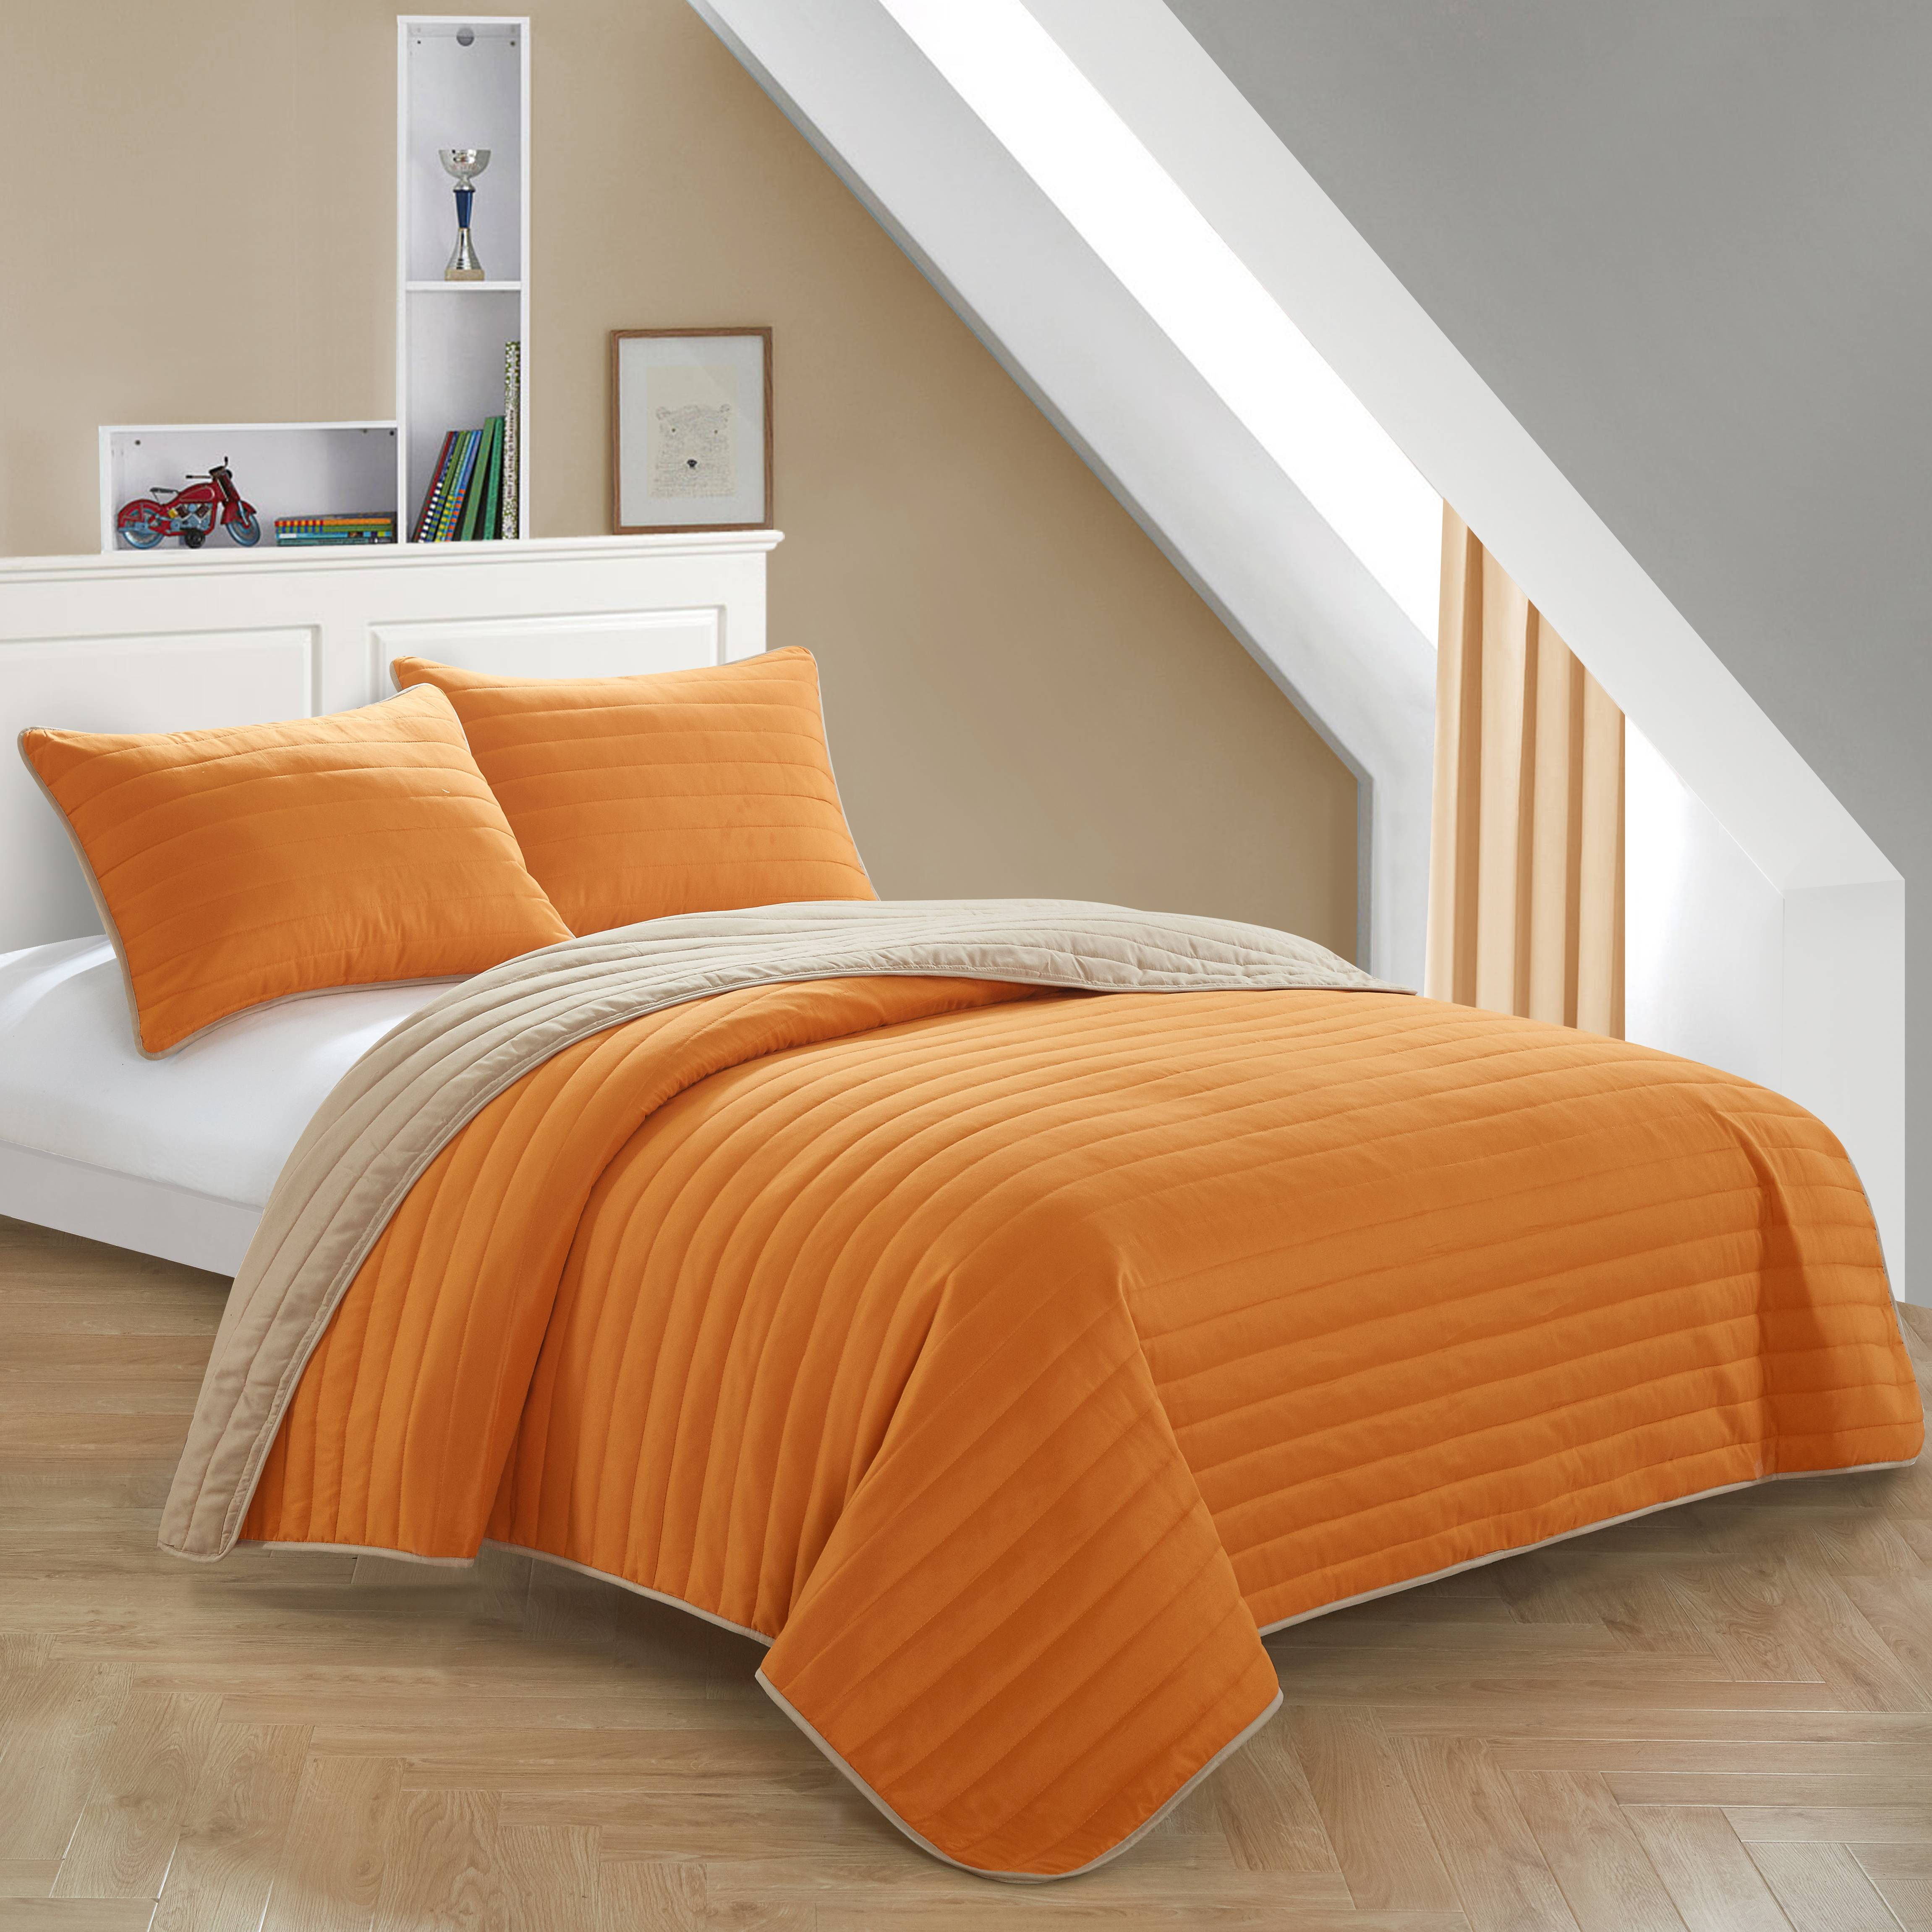 Mainstays Kids Orange Reverse To Tan Quilt Set